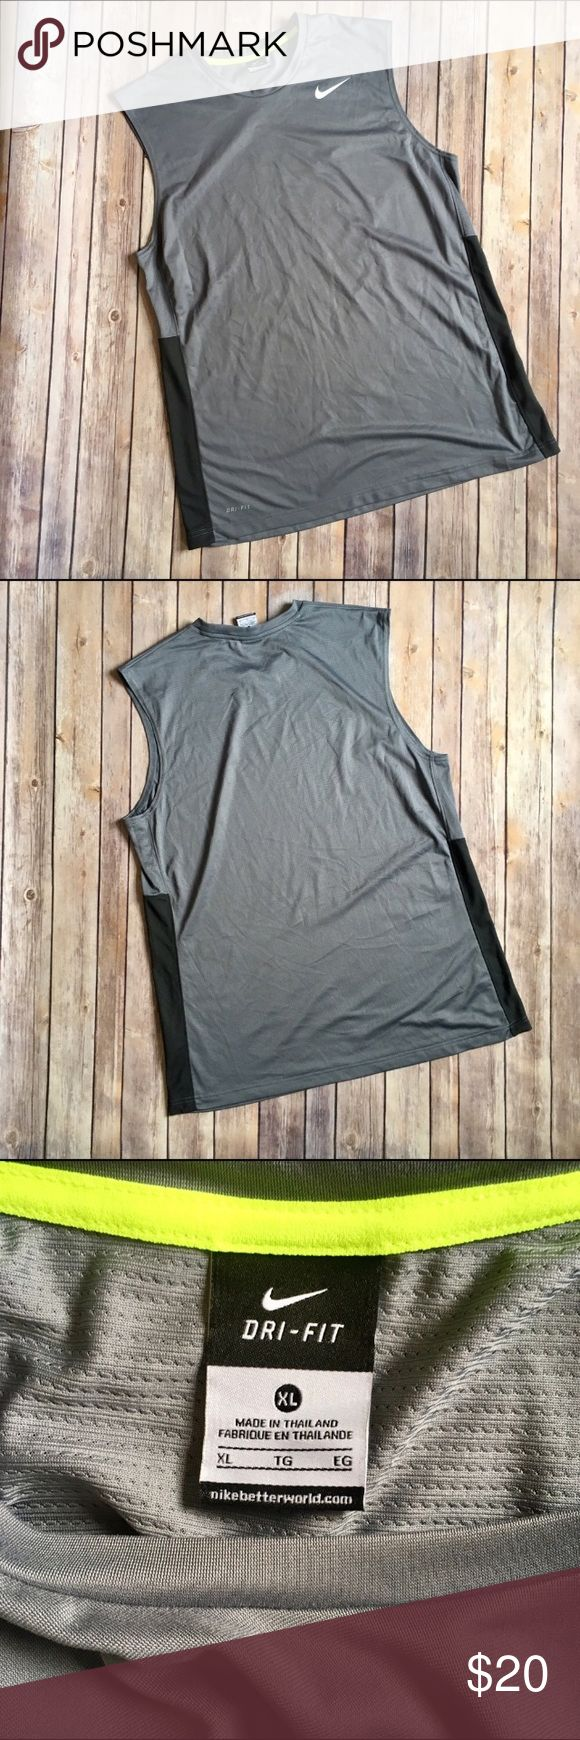 NIKE DRIFIT Men's Grey Muscle Shirt This men's Nike DriFit muscle shirt has a mesh back for comfort and style. Grey with black side panels.  Nike swoosh is white and in perfect shape, intact with no cracking or peeling.   Size XL (Men's)  No stains, snags, runs, holes. Nike Shirts Tank Tops